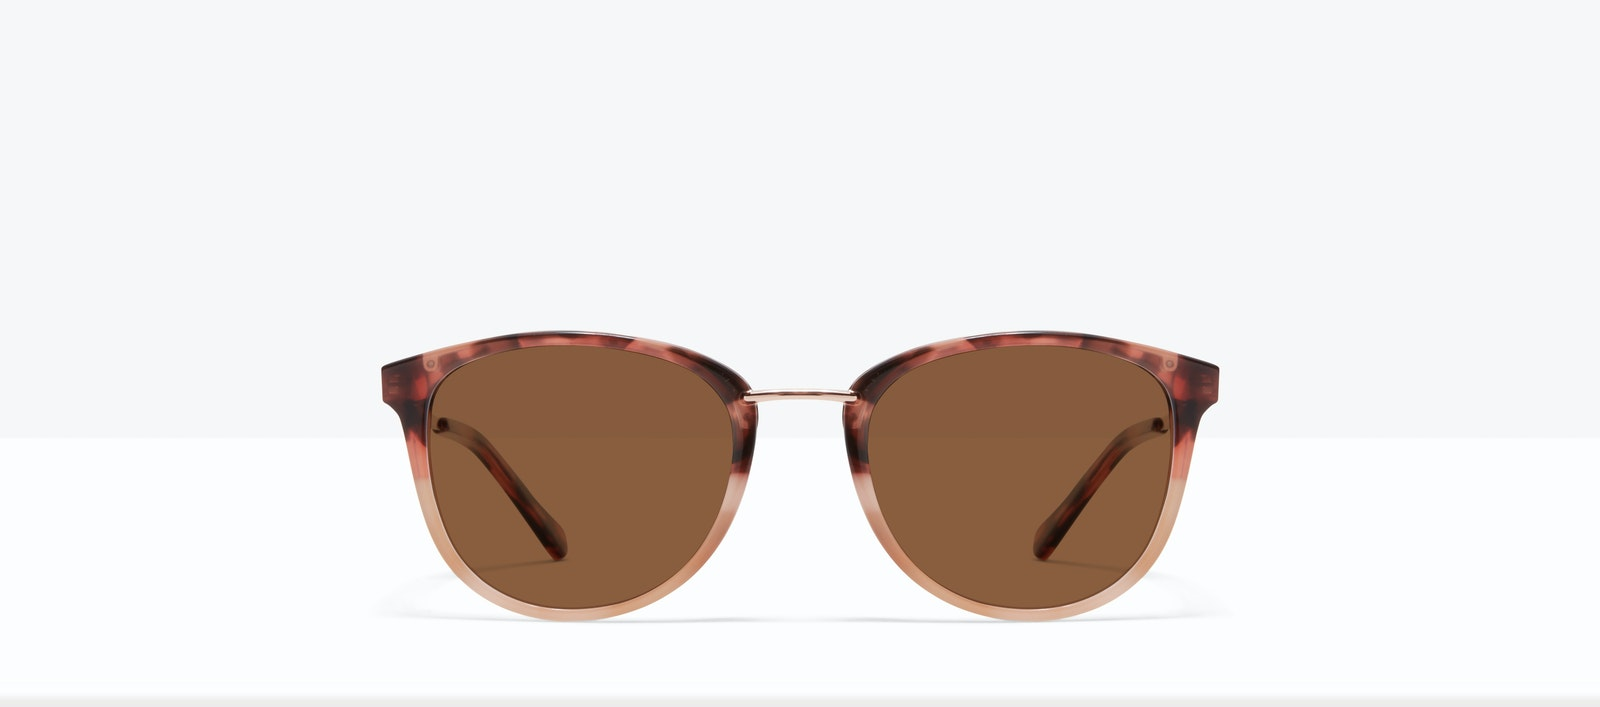 Affordable Fashion Glasses Square Round Sunglasses Women Bella M Two Tone Pink Tort Front